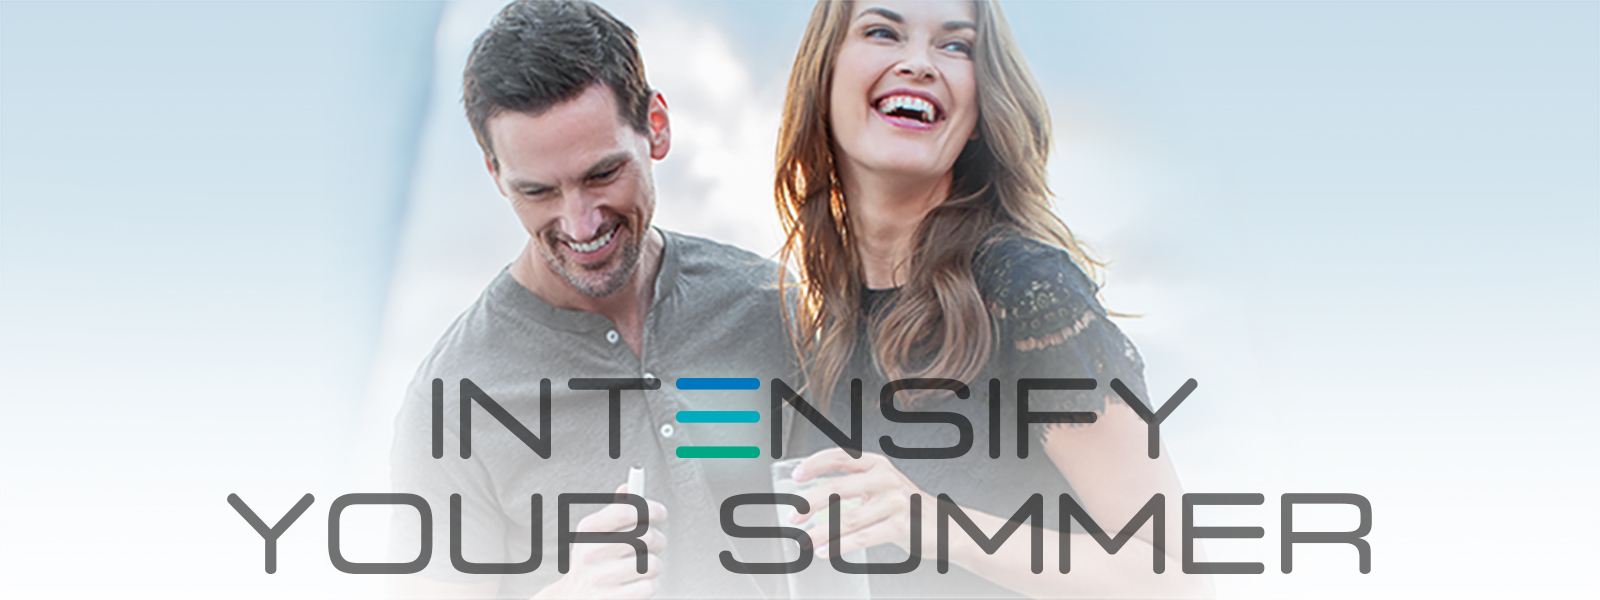 Intensify your summer!